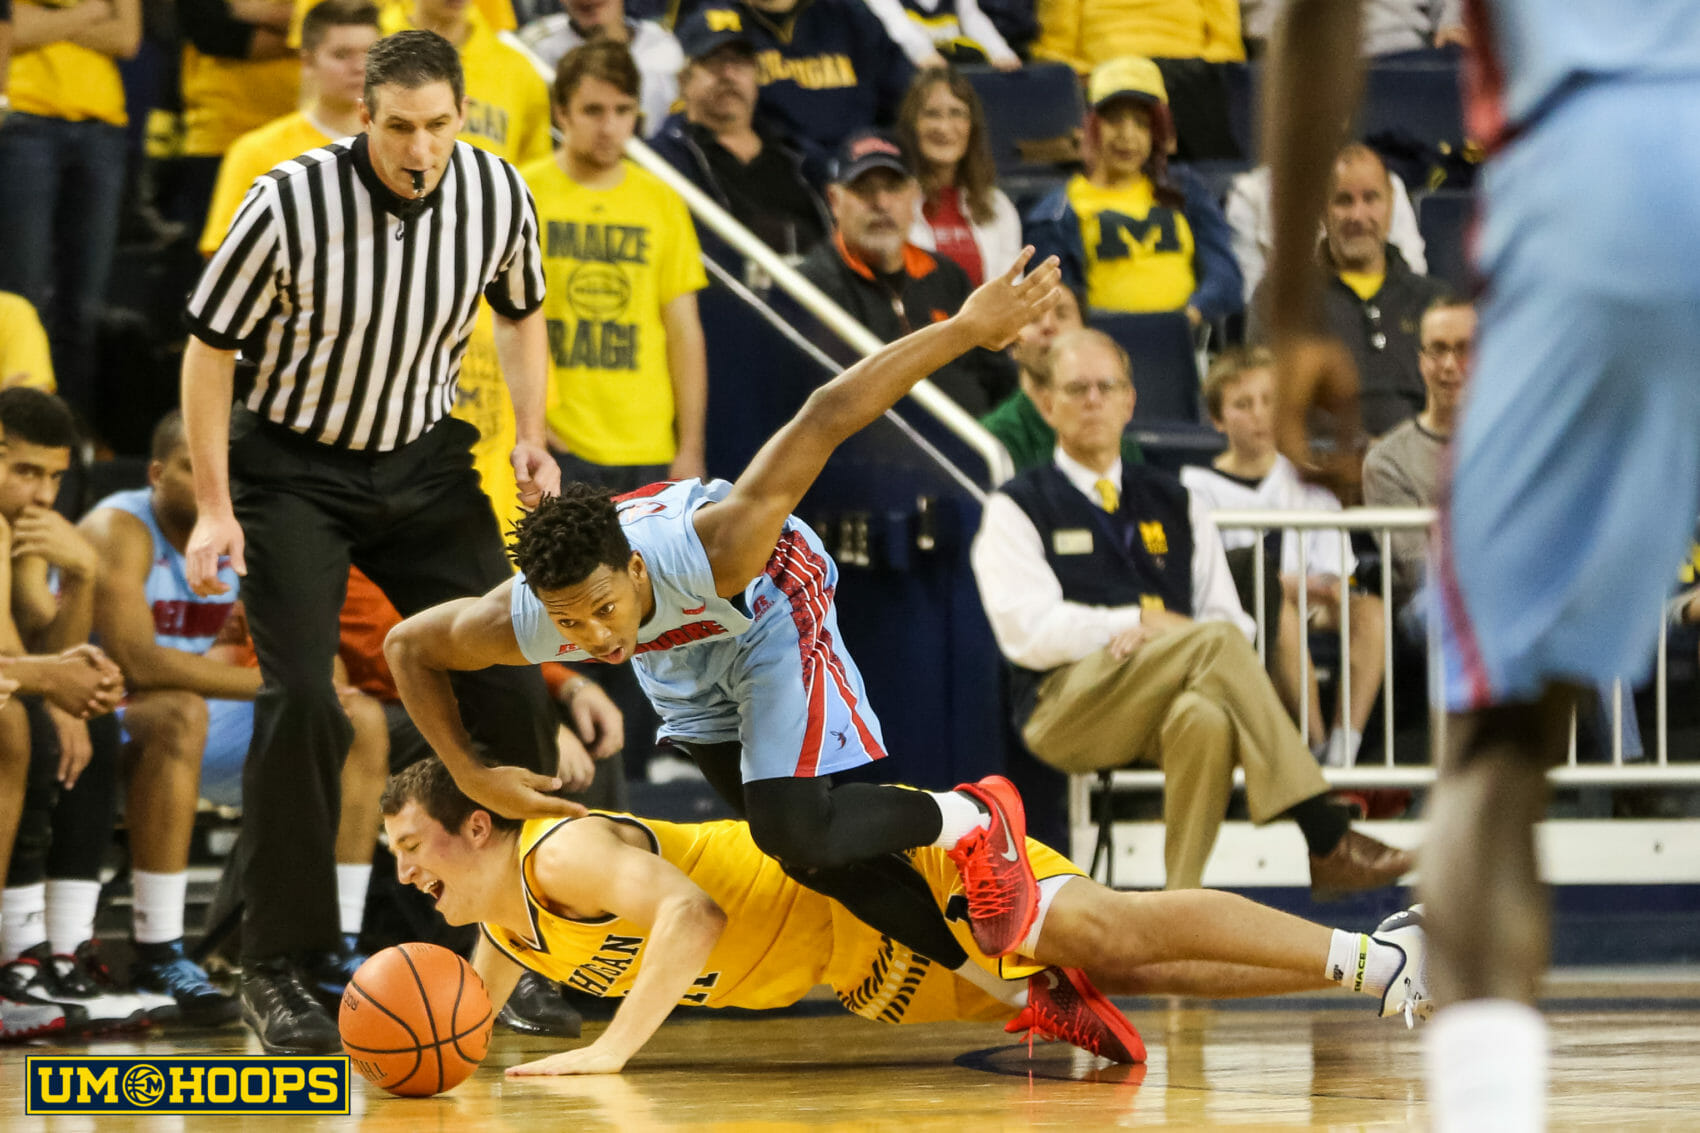 Michigan 80, Delaware State 33-25